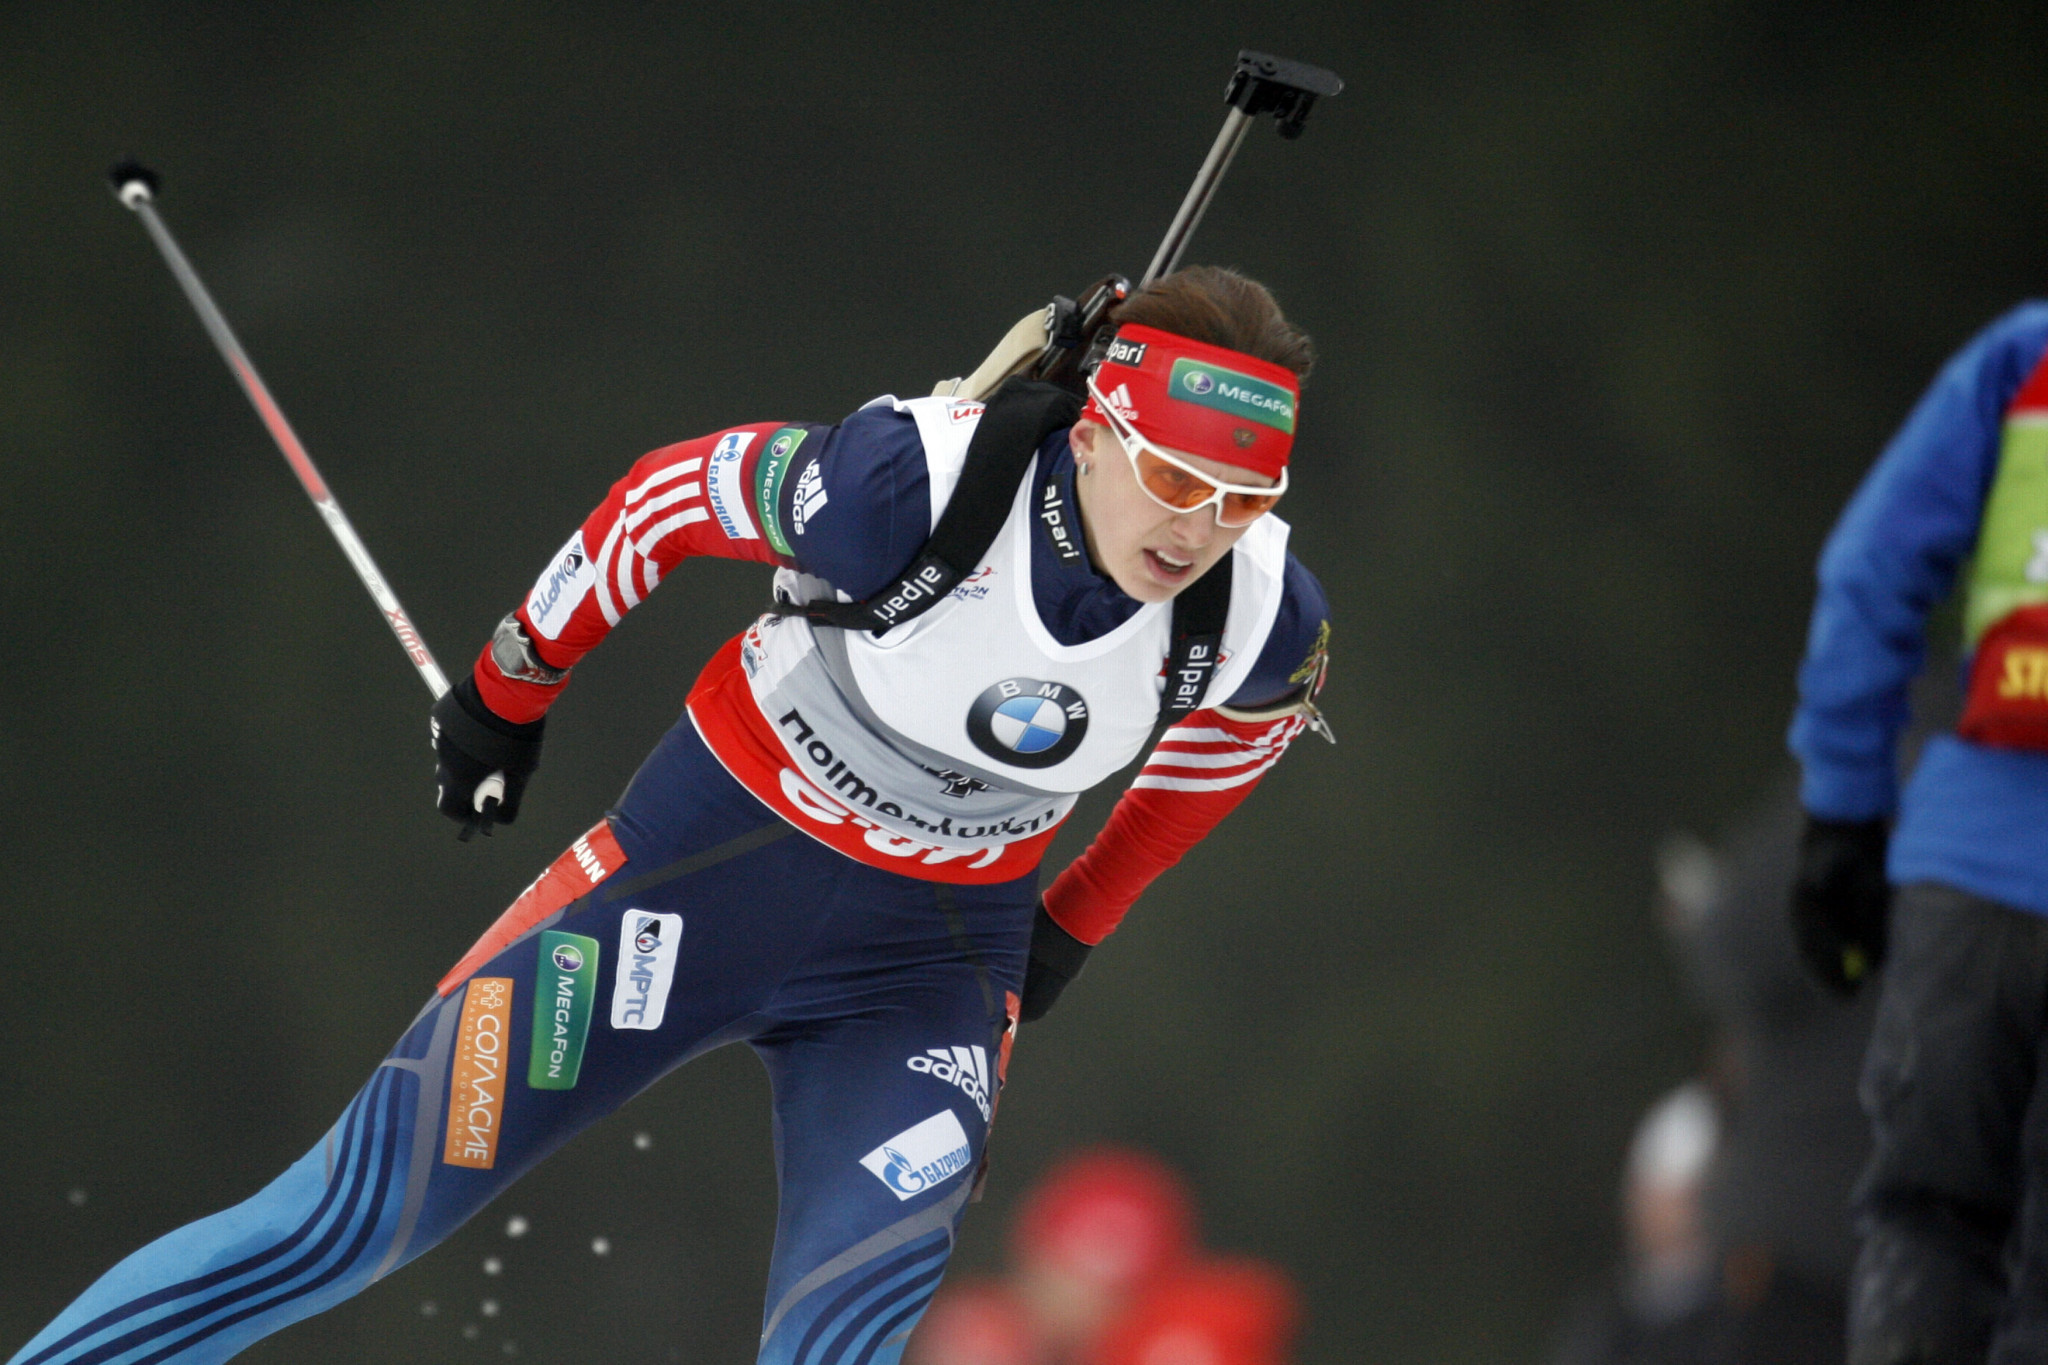 IBU provisionally suspend two athletes from attending events after sanctioned by IOC